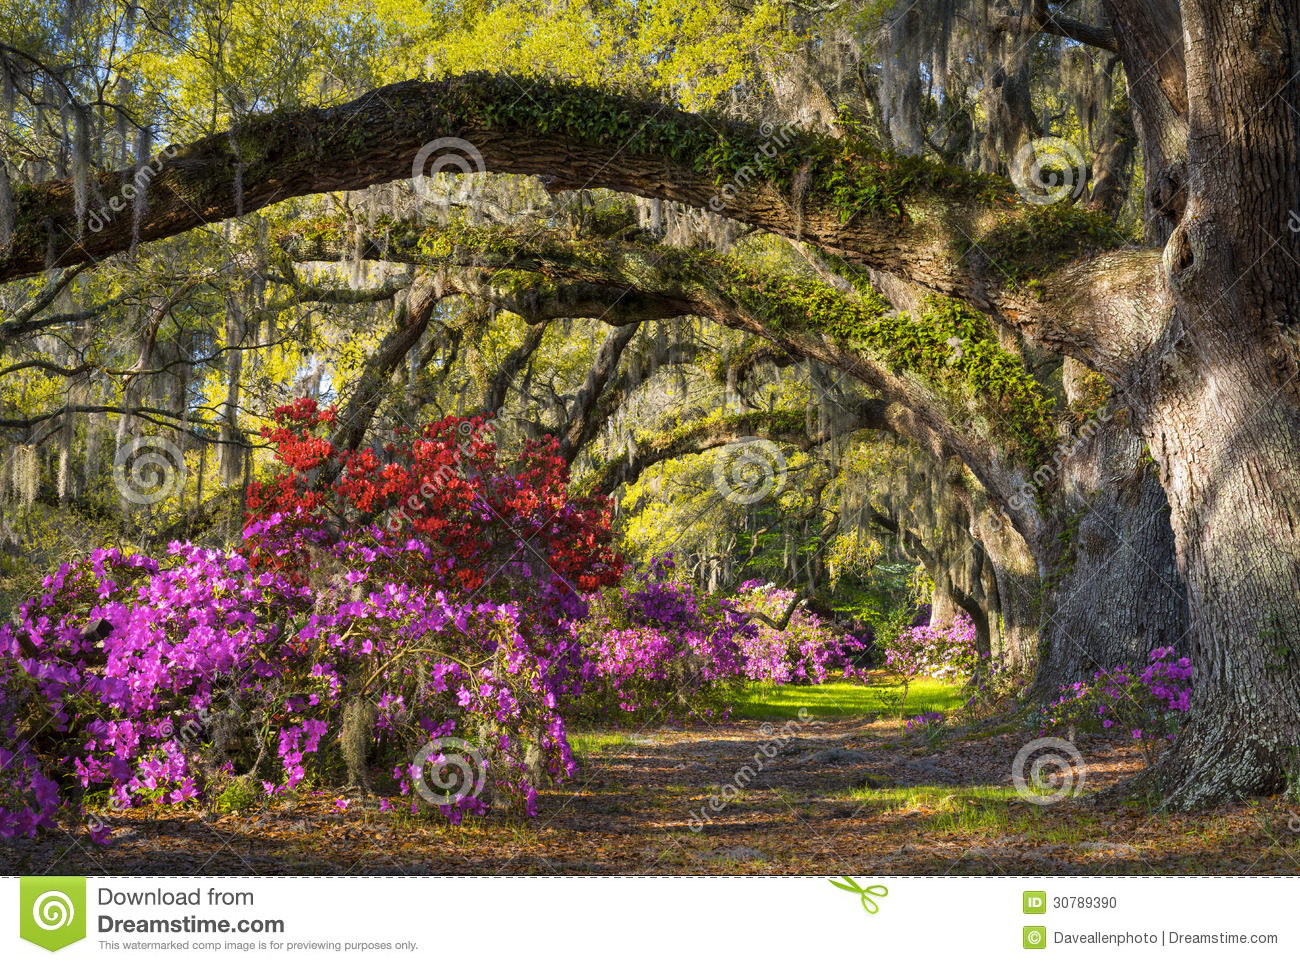 Jardin d 39 azalea flowers south carolina plantation de fleur de ressort de sc de charleston photo for Jardin plantation